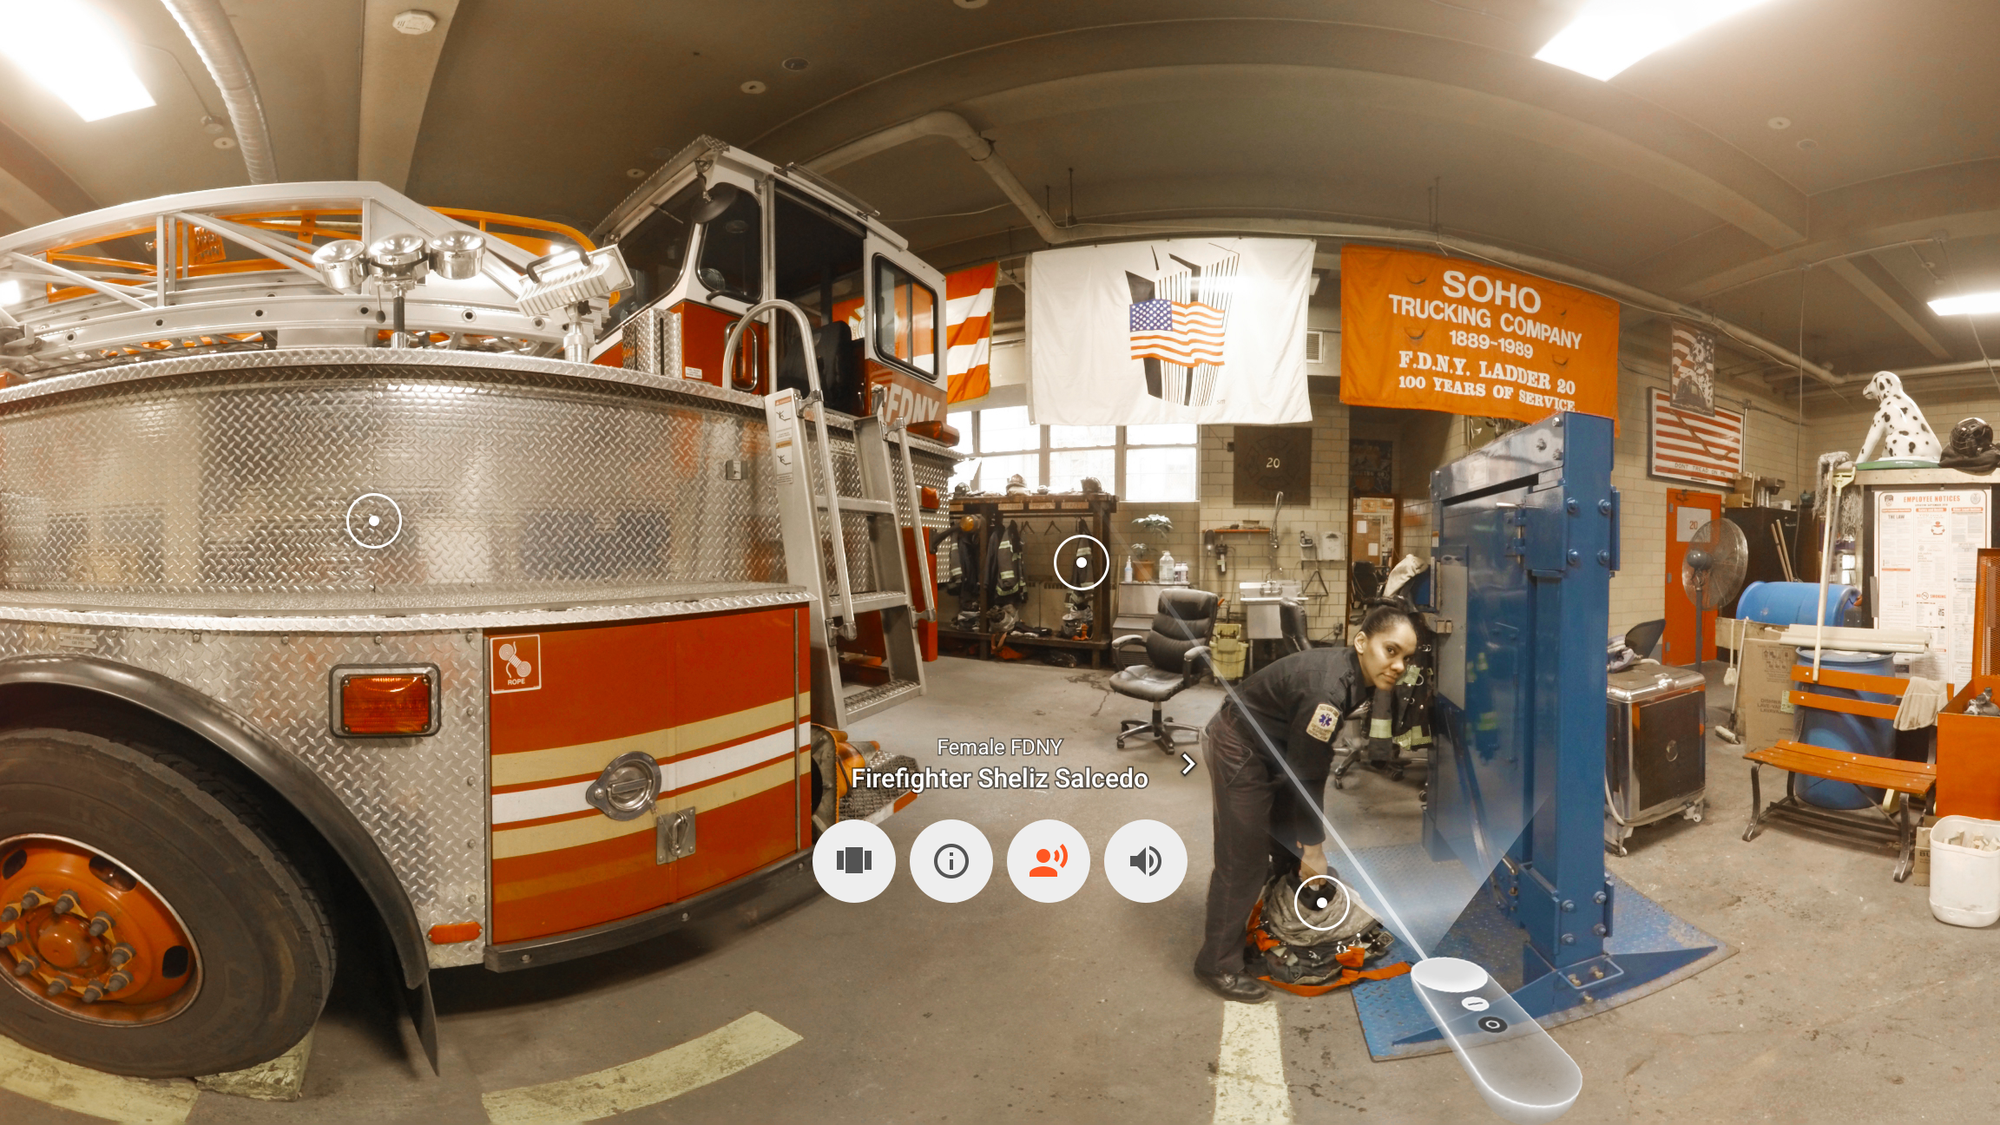 Adventures abound: Explore Google Expeditions on your own